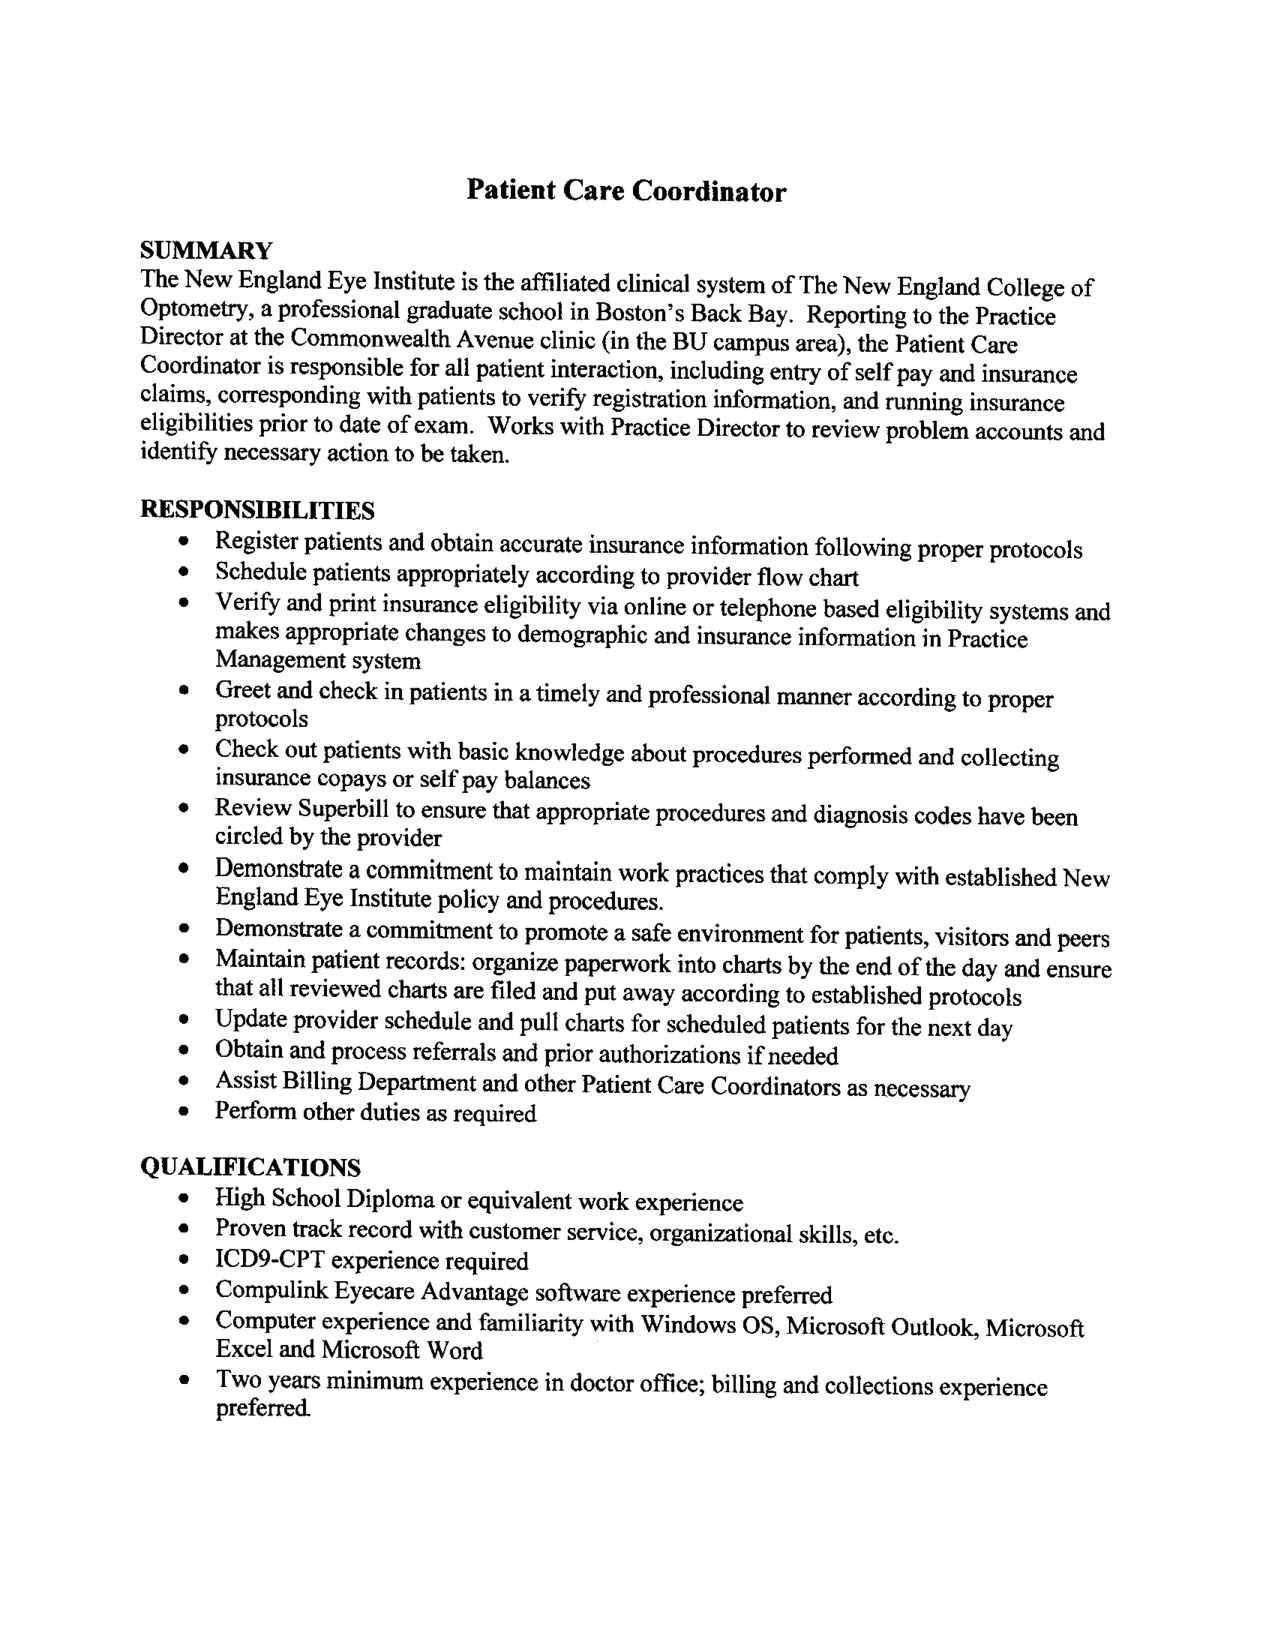 Patient Care Technician Resume Objective Sample 2016 Patient Care Coordinator Resume Sample